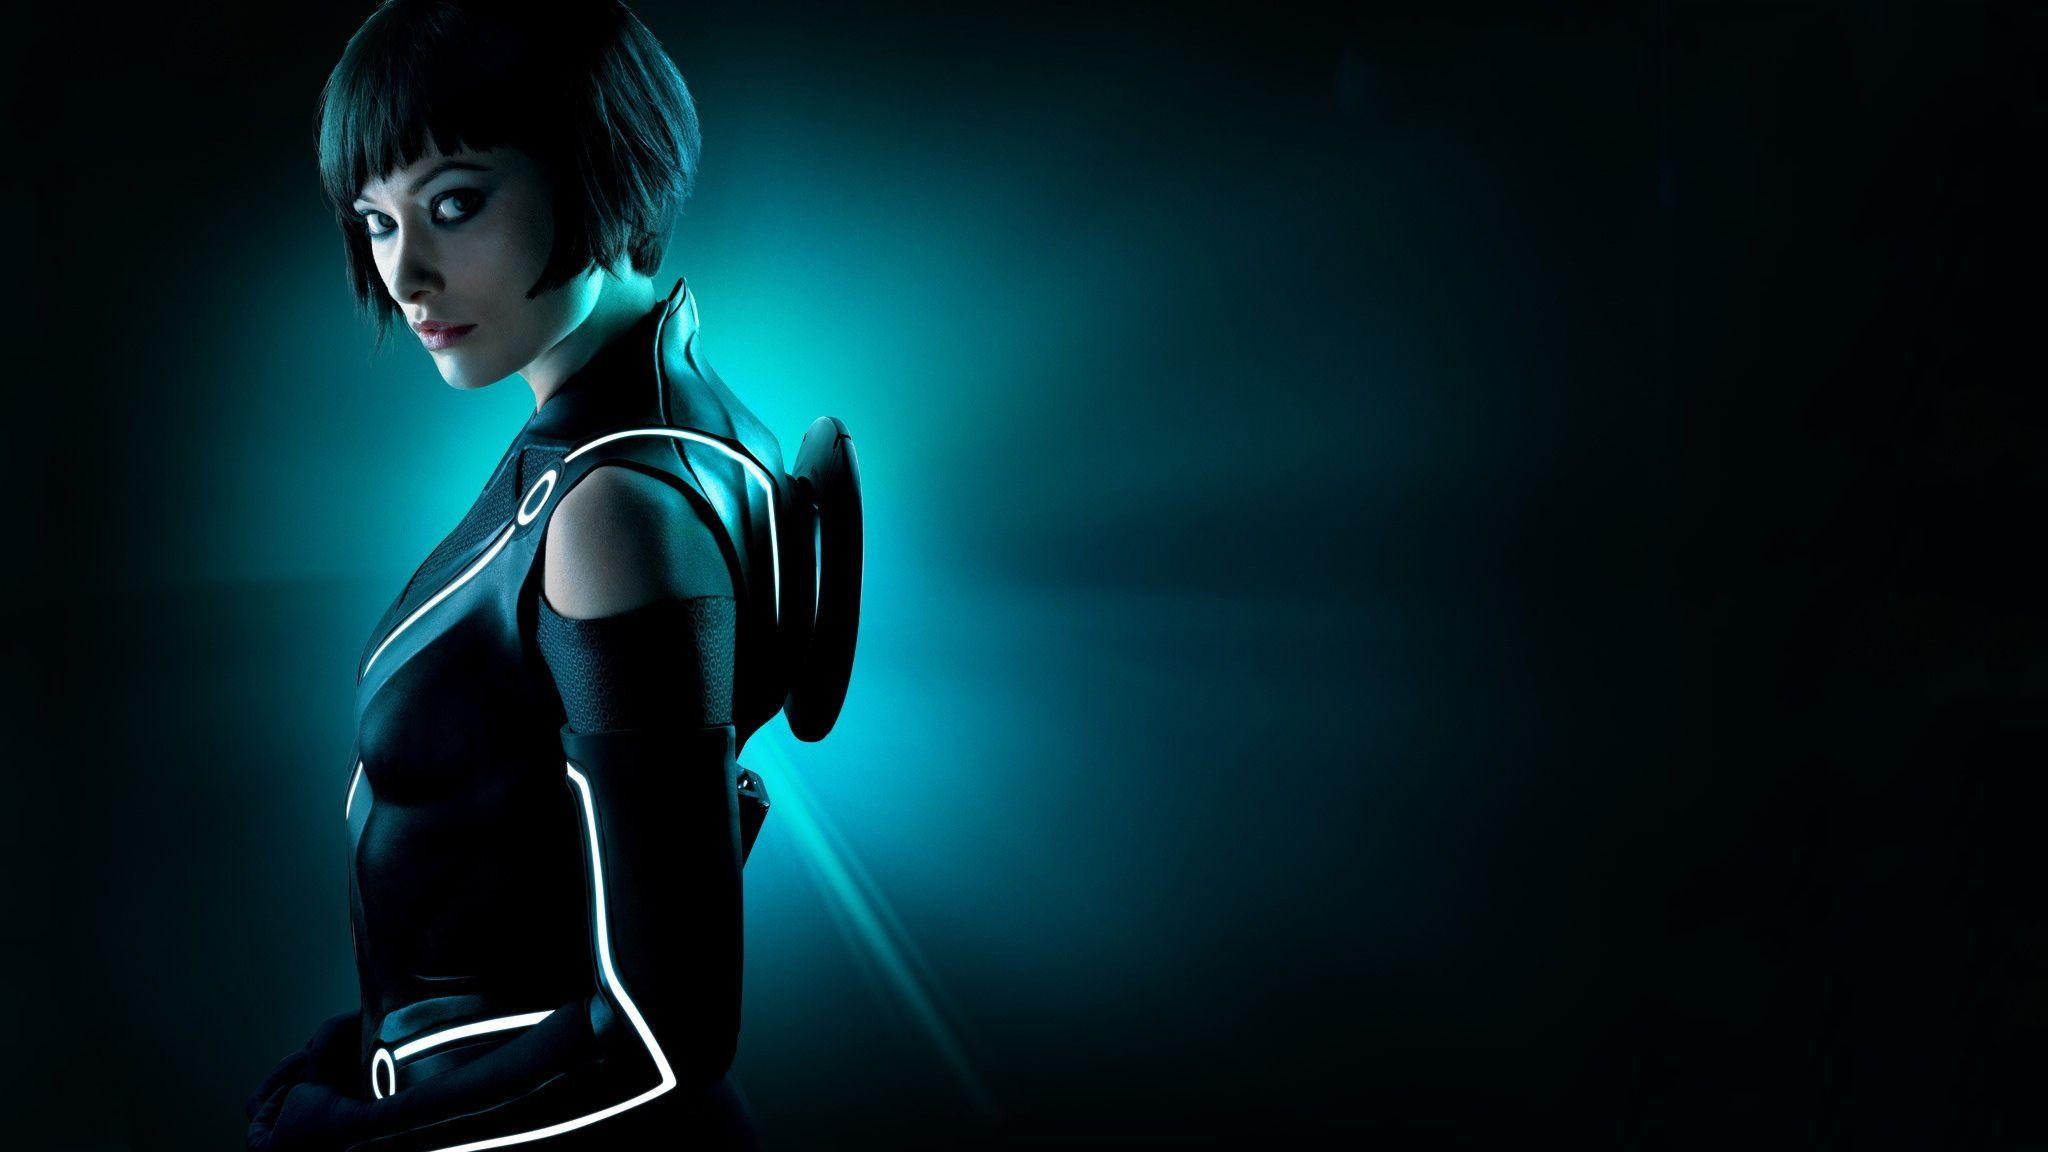 Tron: Legacy Wallpapers 1080p